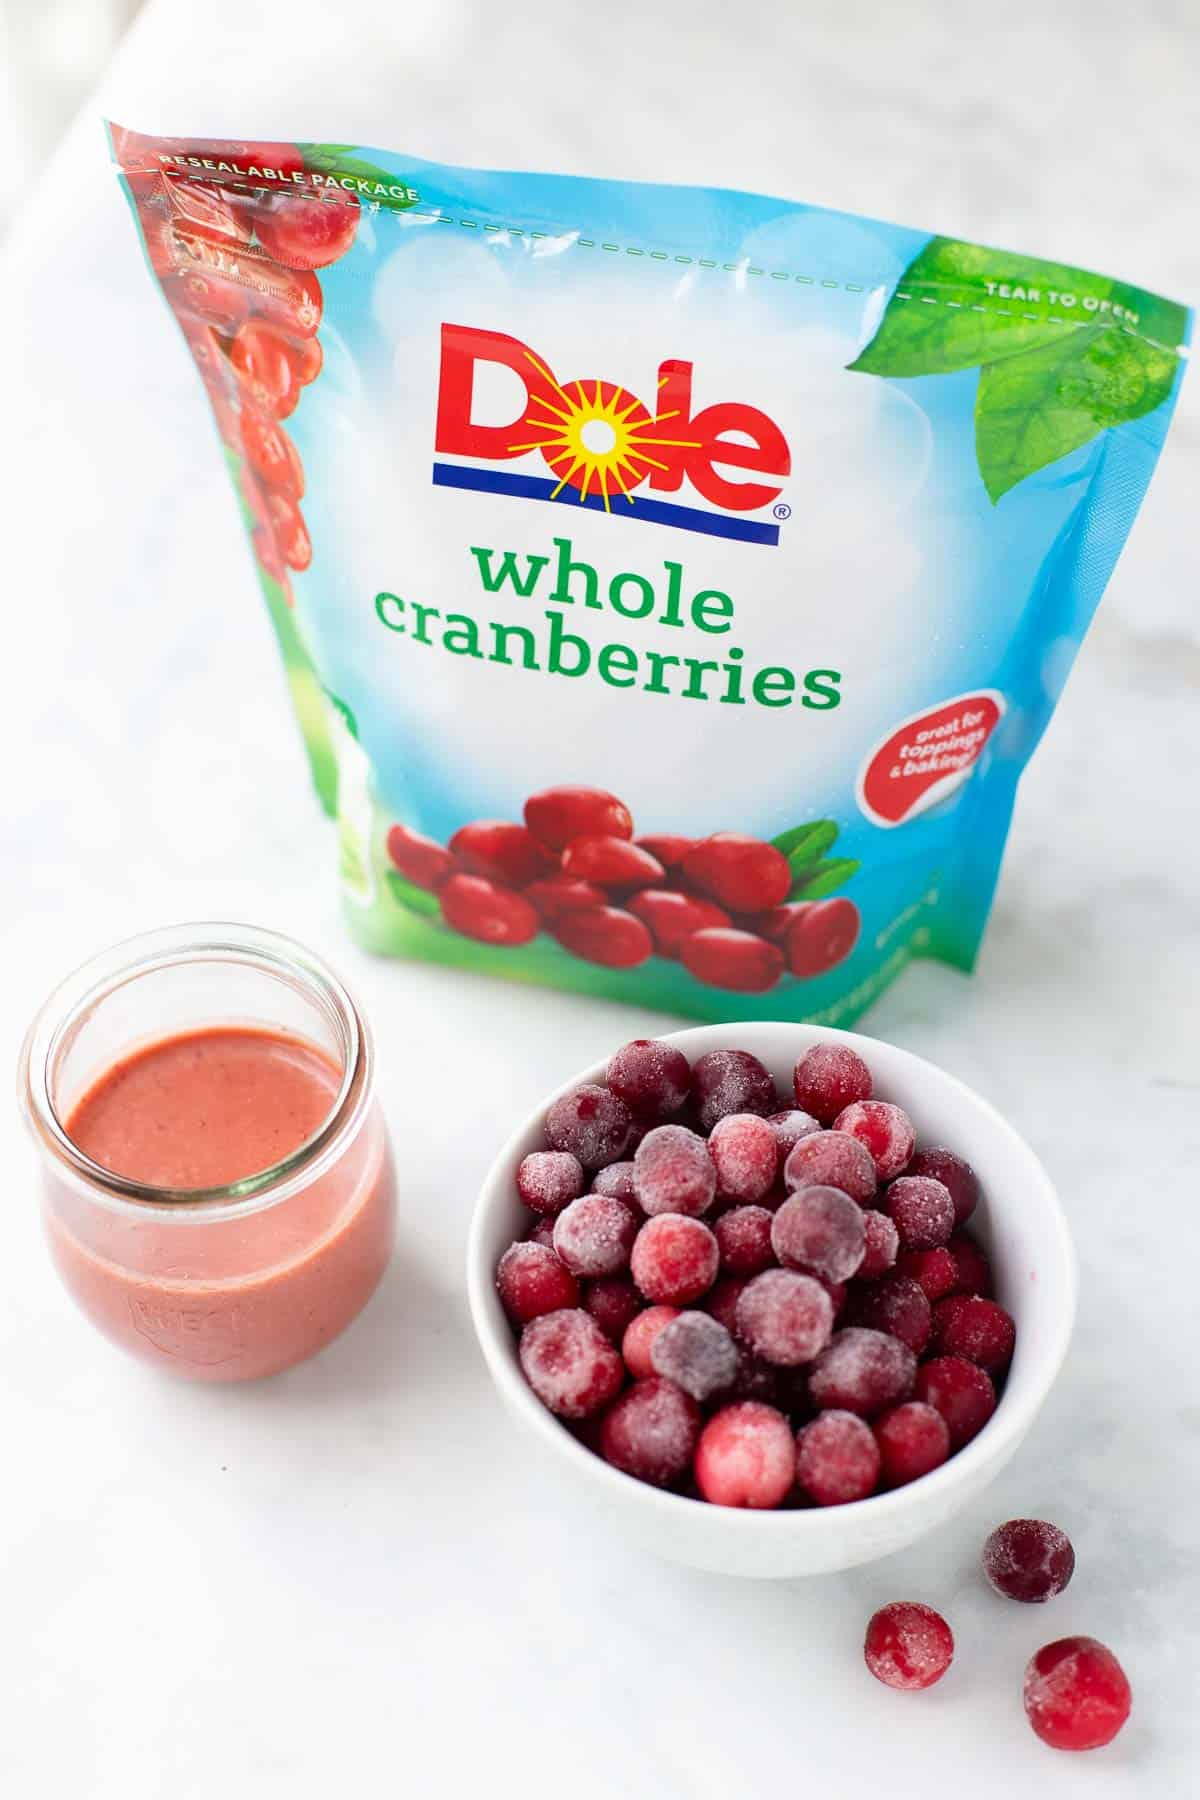 dole frozen cranberries and jar of salad dressing